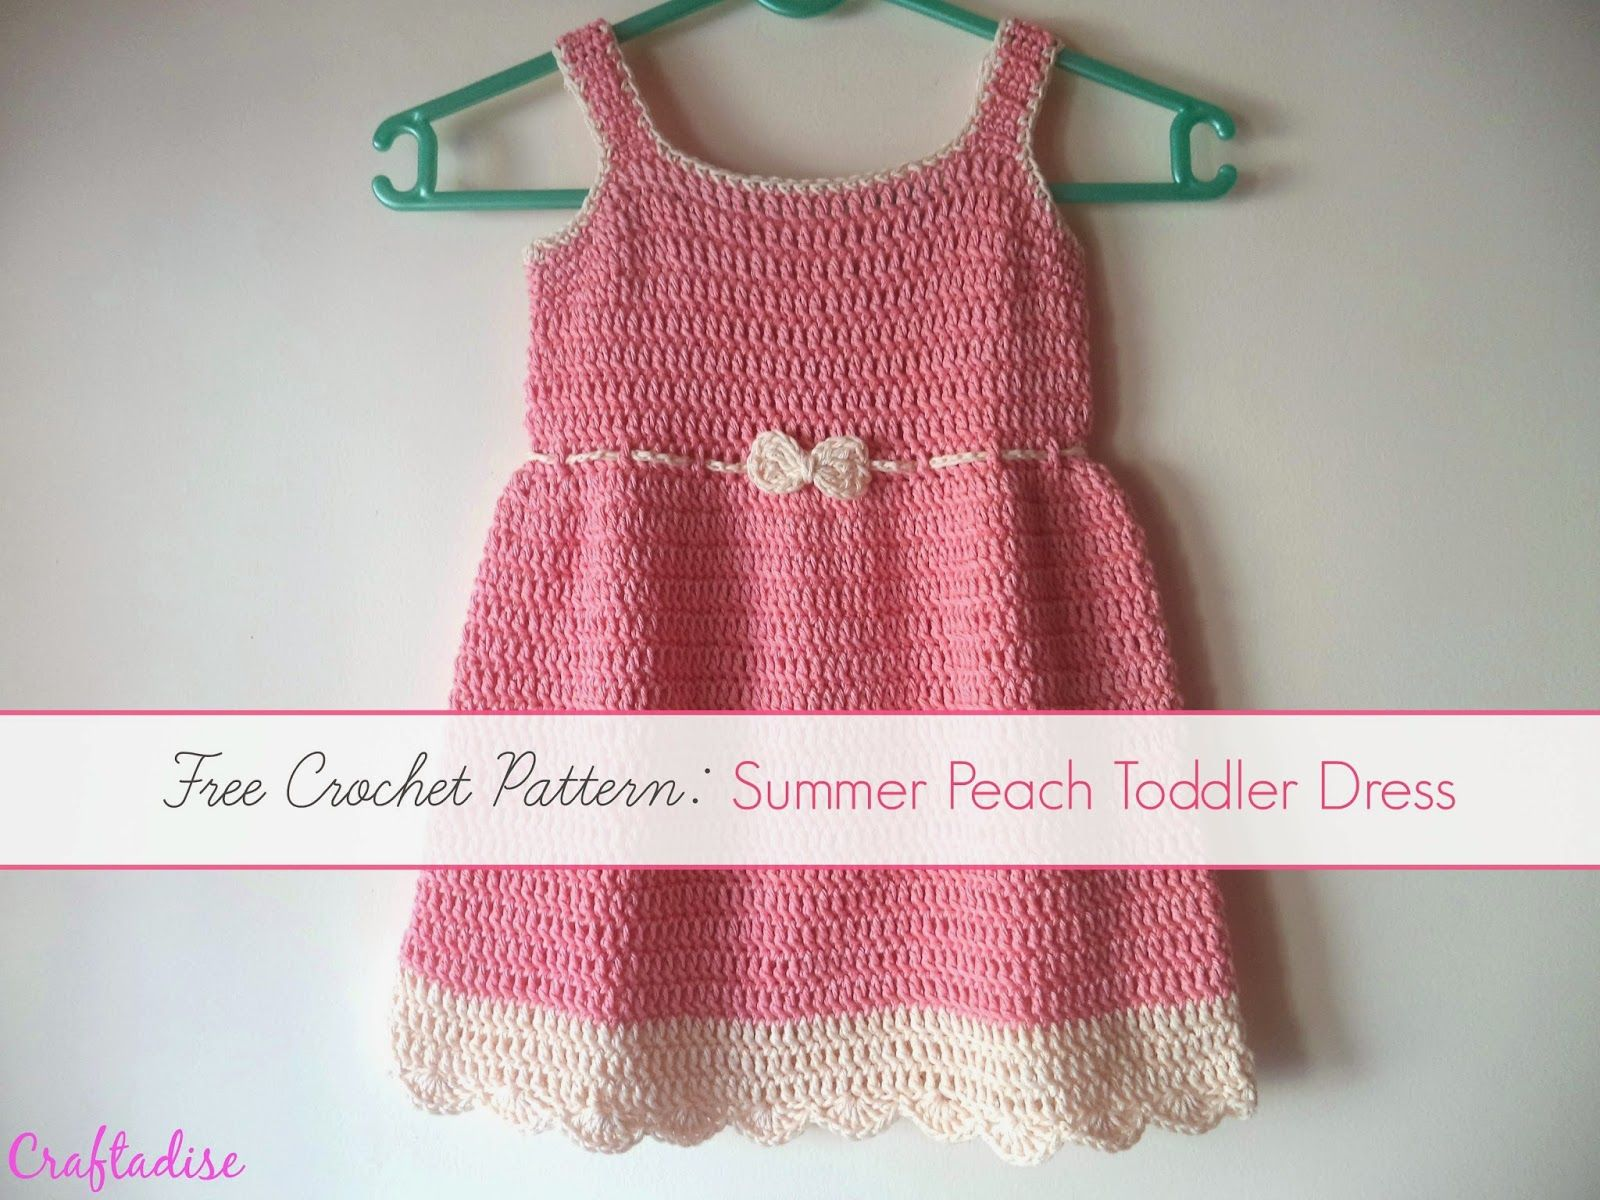 Free crochet pattern crochet summer peach toddler dress crochet free crochet pattern crochet summer peach toddler dress bankloansurffo Image collections